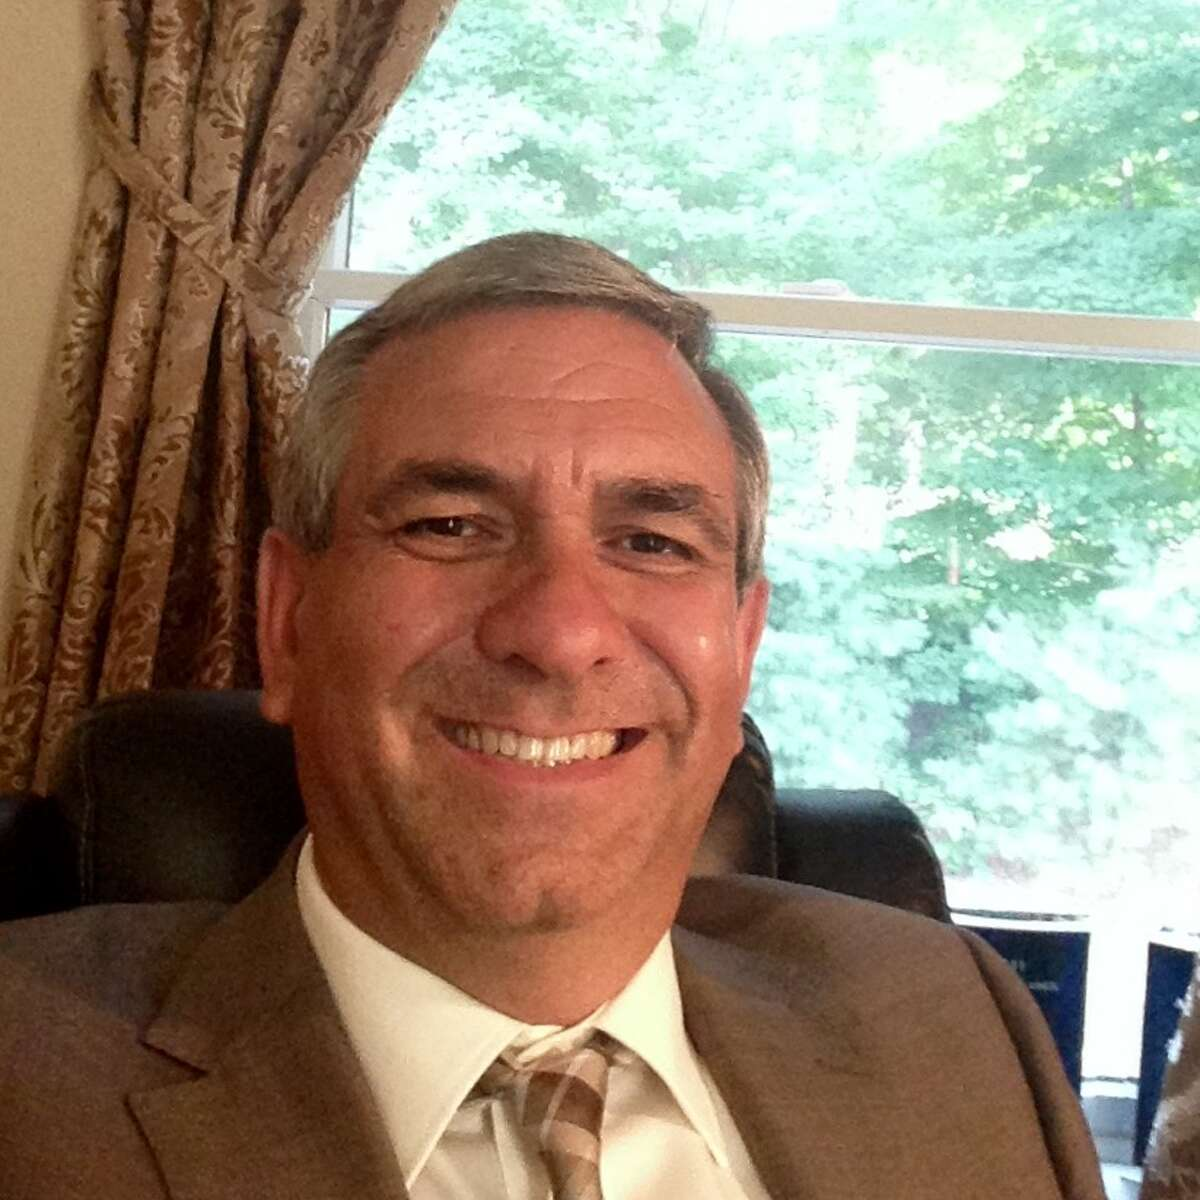 Mike AltamuraAge: 51 Party Affiliation: Republican Occupation: Prudential Insurance Company agent Facts: 38-year resident Married, four children One school-age child at Stamford High School Wife, Esther, is a 15-year elementary school teacher in district.